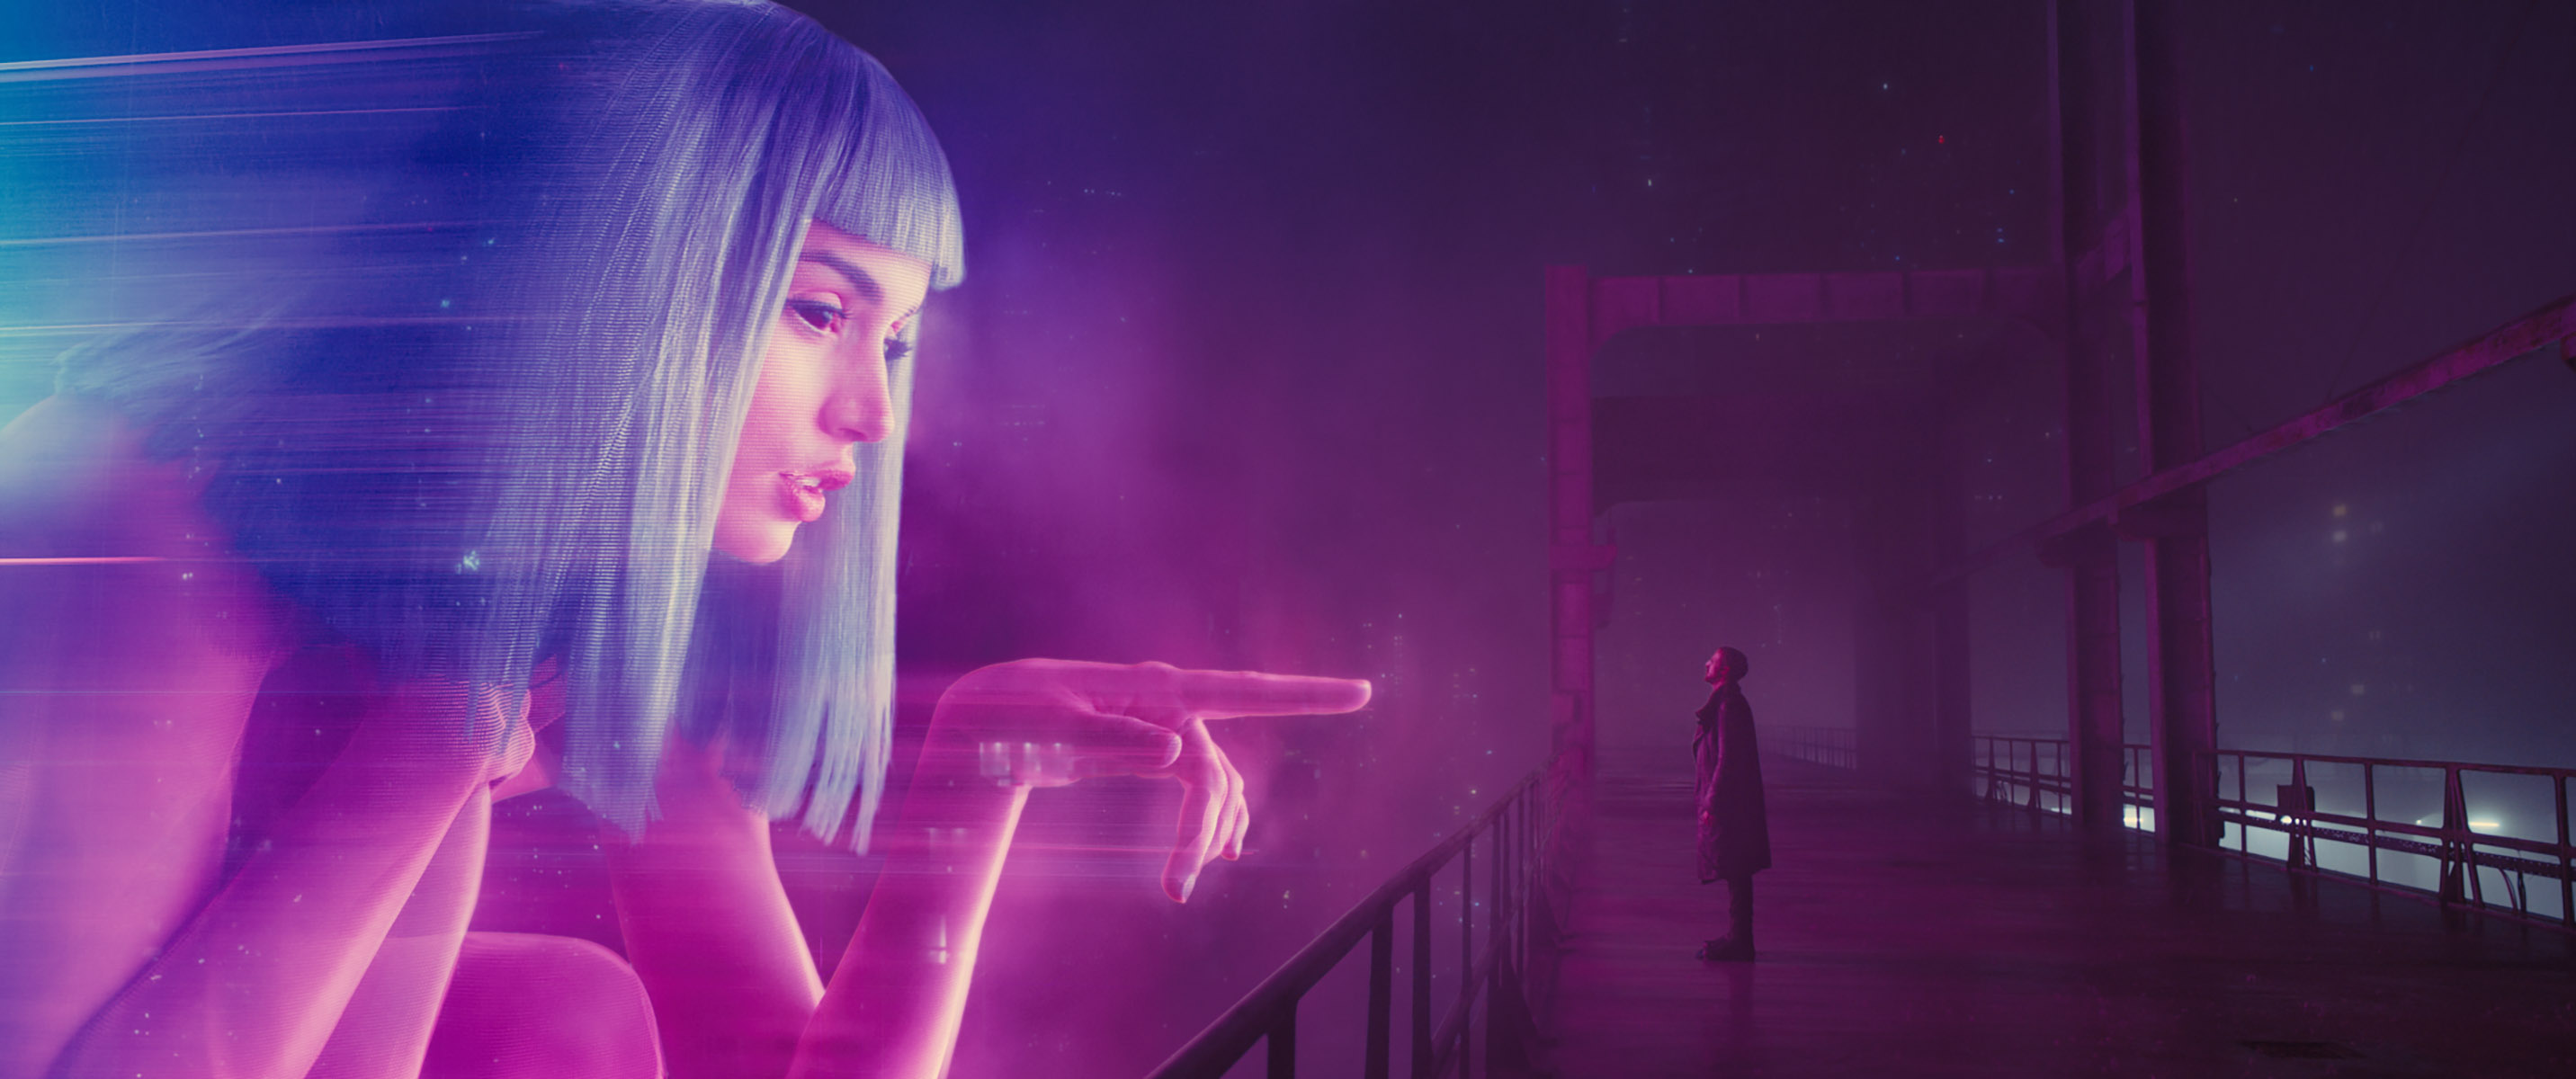 Image result for blade runner 2049 scene